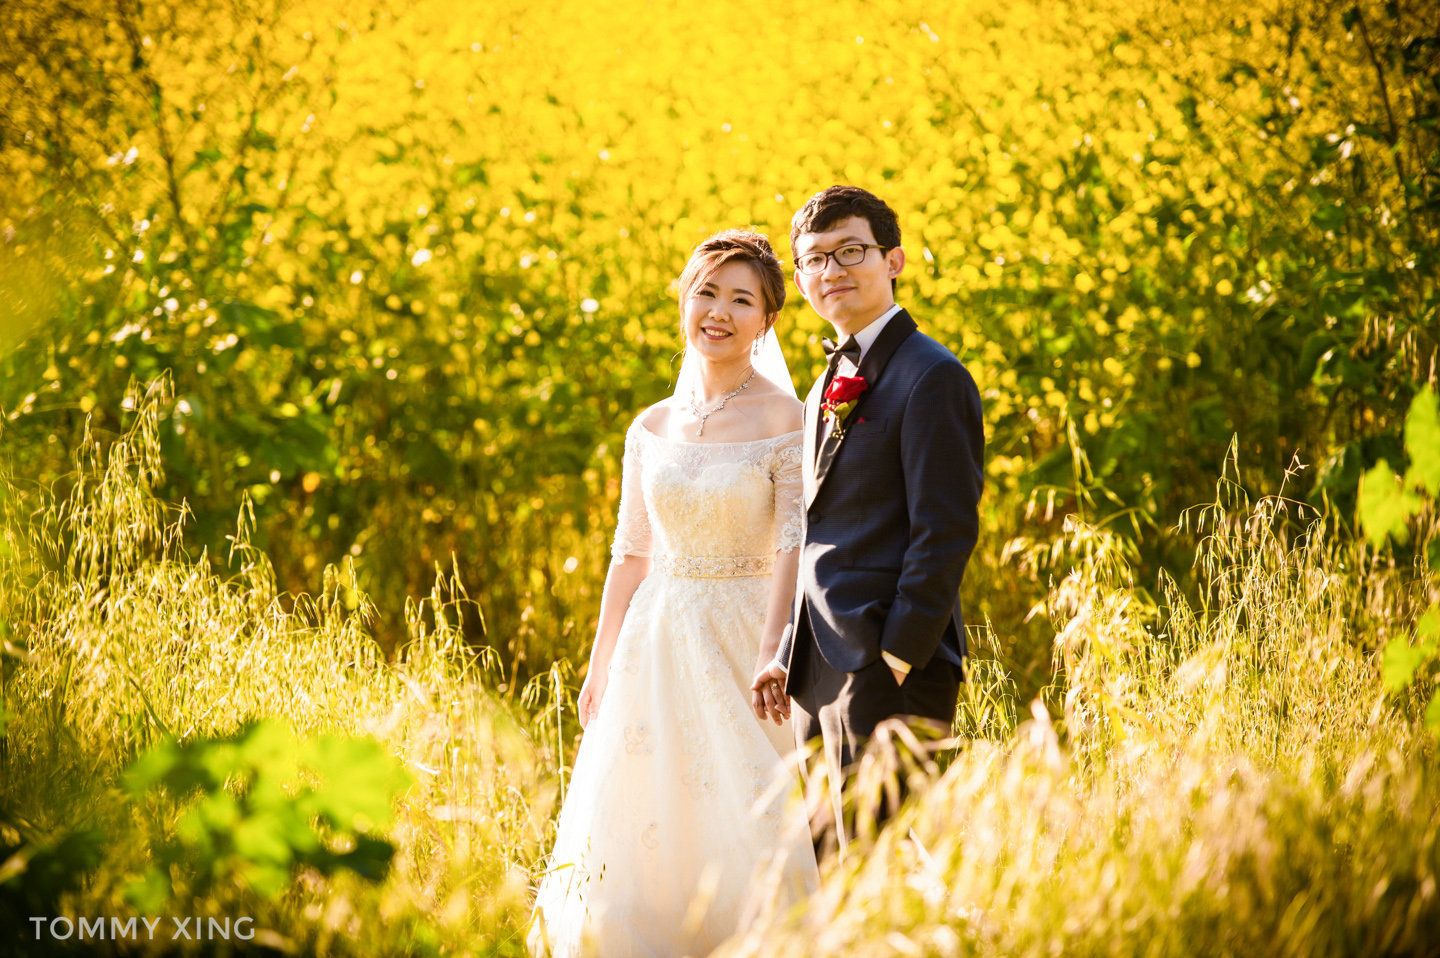 Los Angeles Wedding Photographer 洛杉矶婚礼婚纱摄影师 Tommy Xing-172.JPG